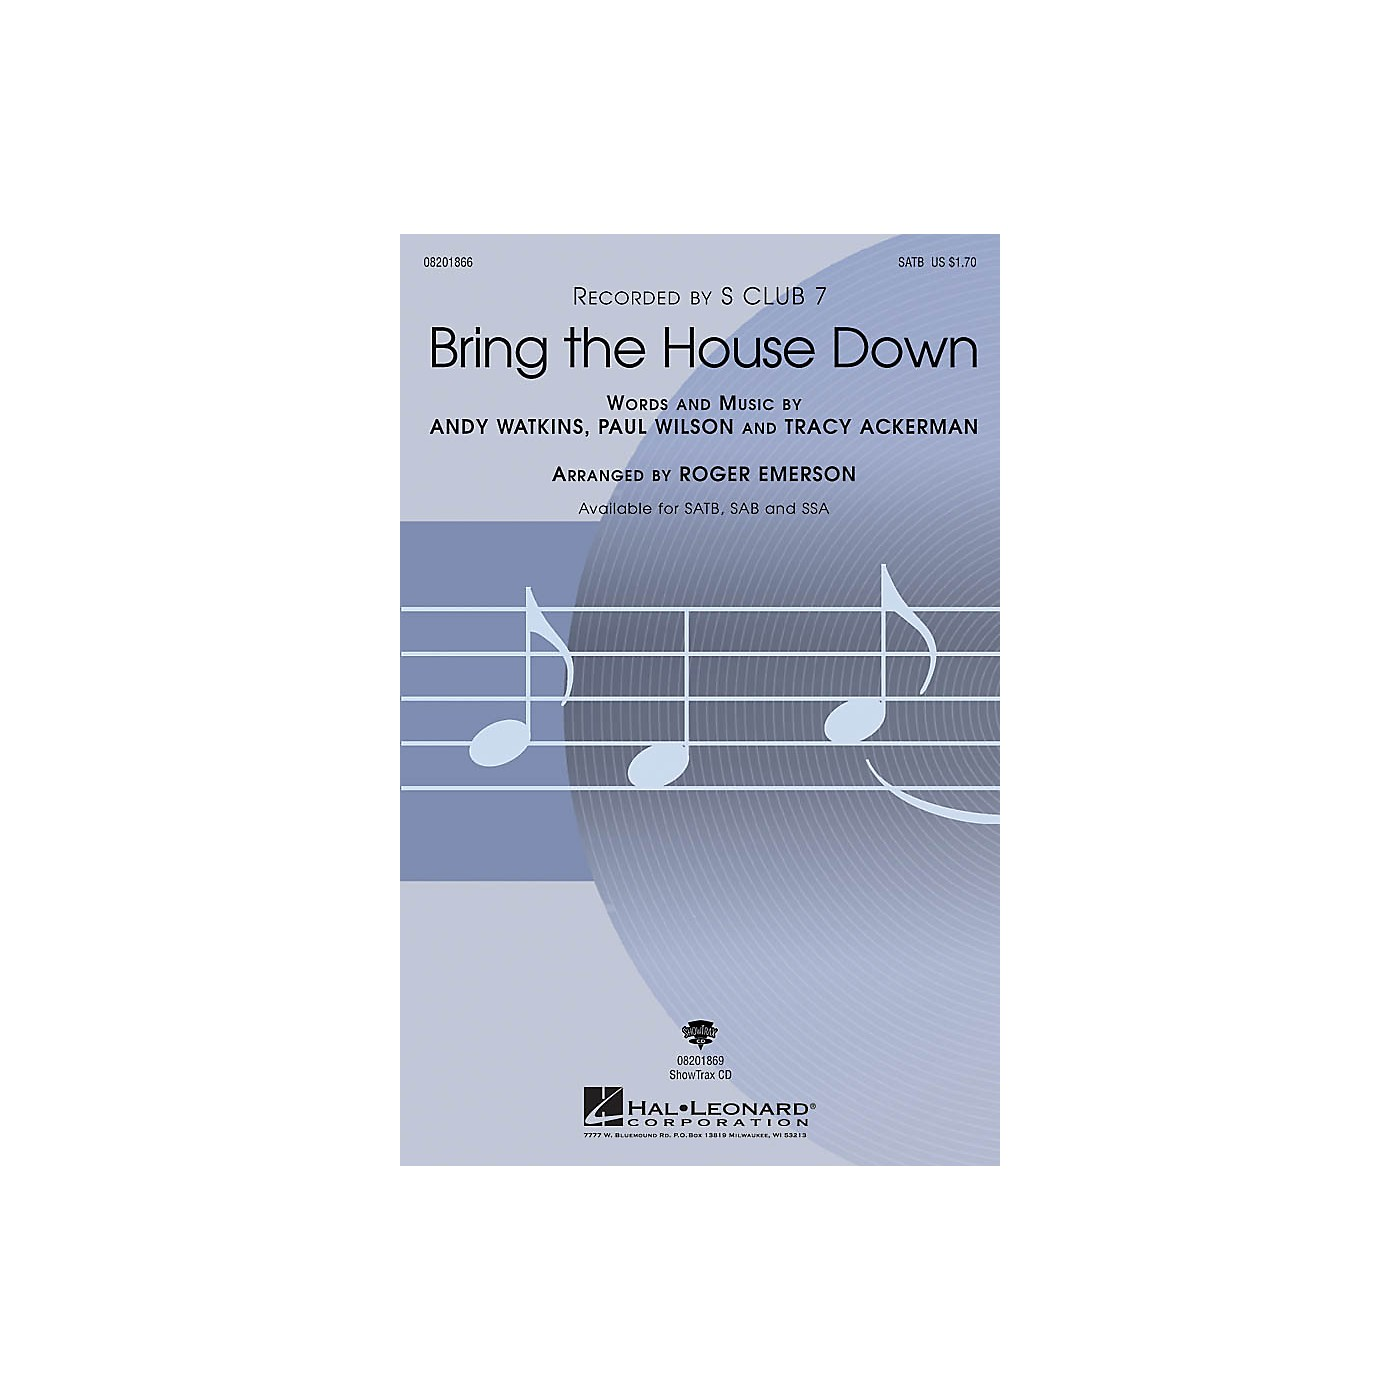 Hal Leonard Bring the House Down (Recorded by S Club 7) SATB arranged by Roger Emerson thumbnail